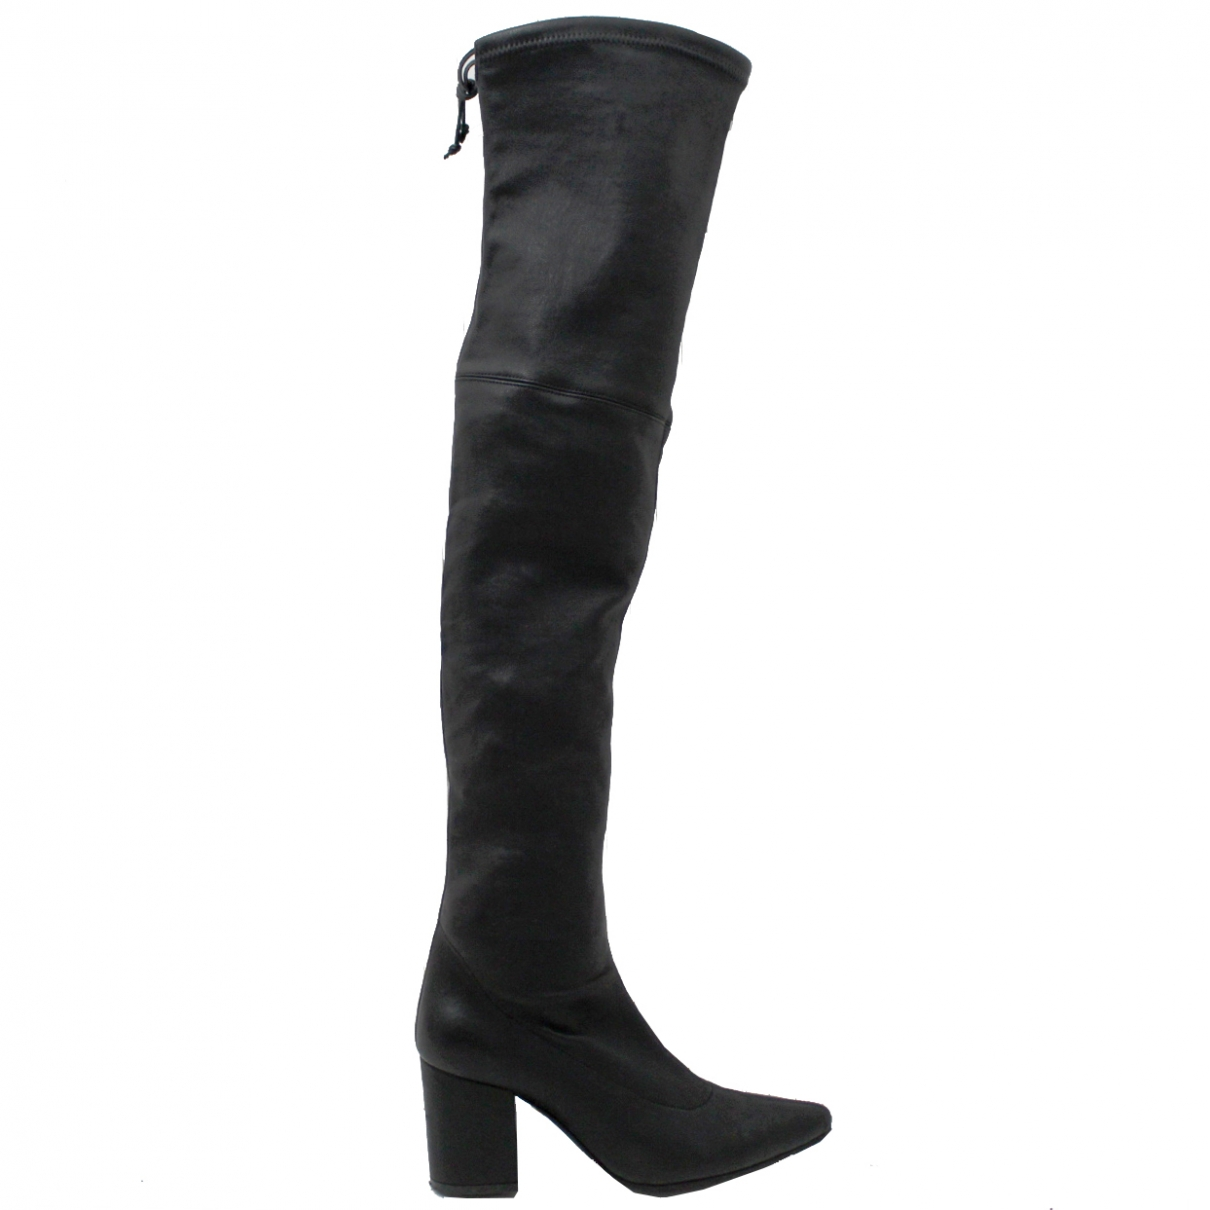 Anine Bing \N Black Leather Boots for Women 36 EU